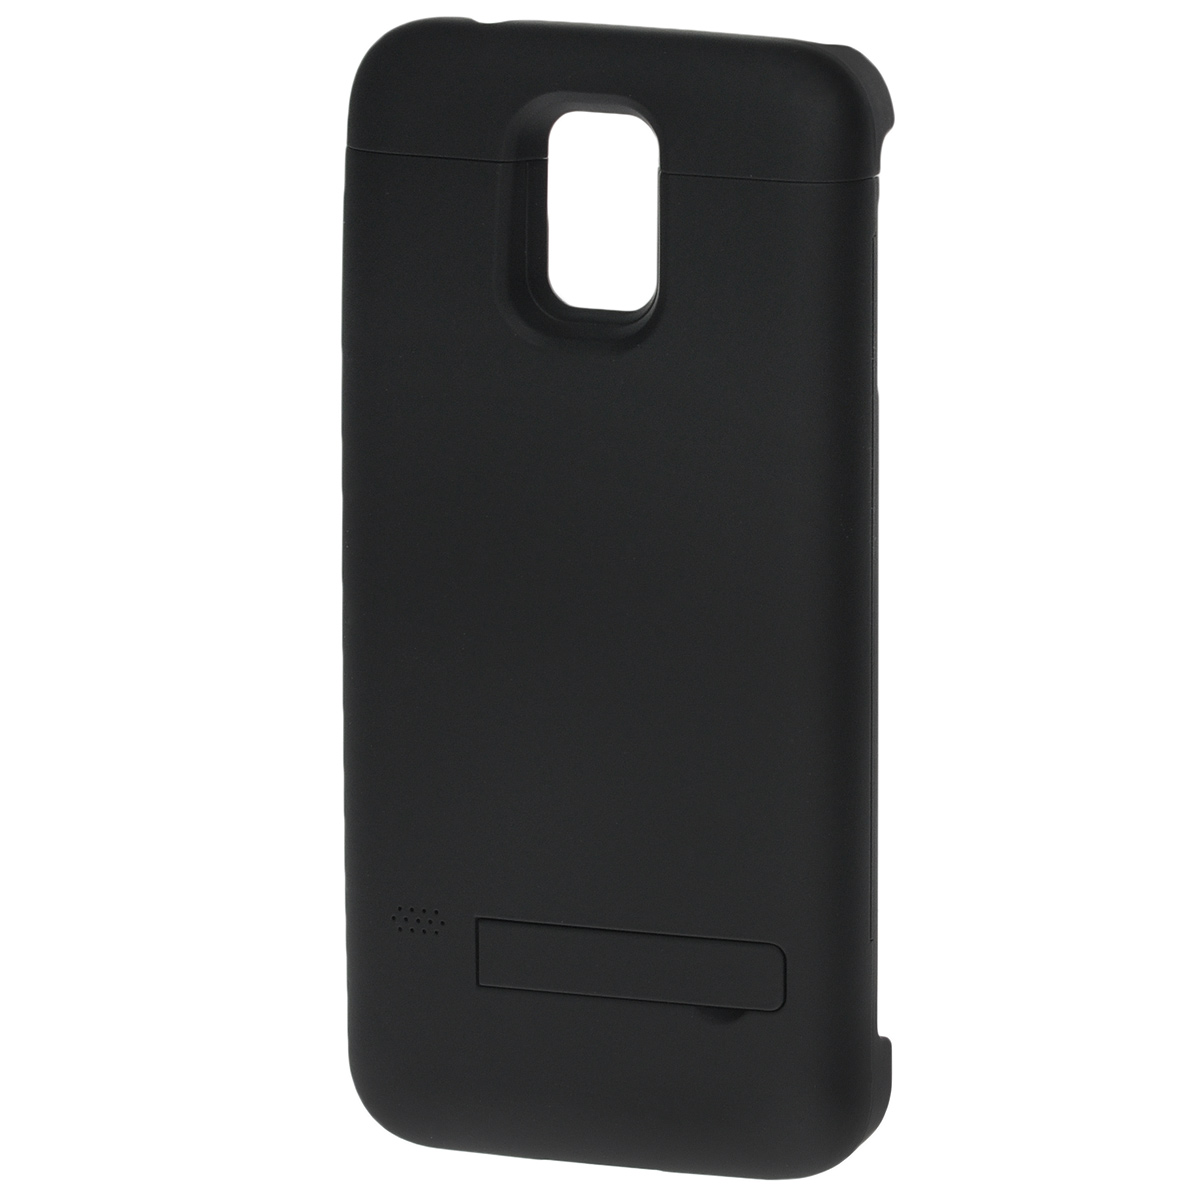 EXEQ HelpinG-SC08 чехол-аккумулятор для Samsung Galaxy S5, Black (3300 мАч, клип-кейс) exeq helping sc09 чехол аккумулятор для samsung galaxy s5 mini black 3300 мач клип кейс